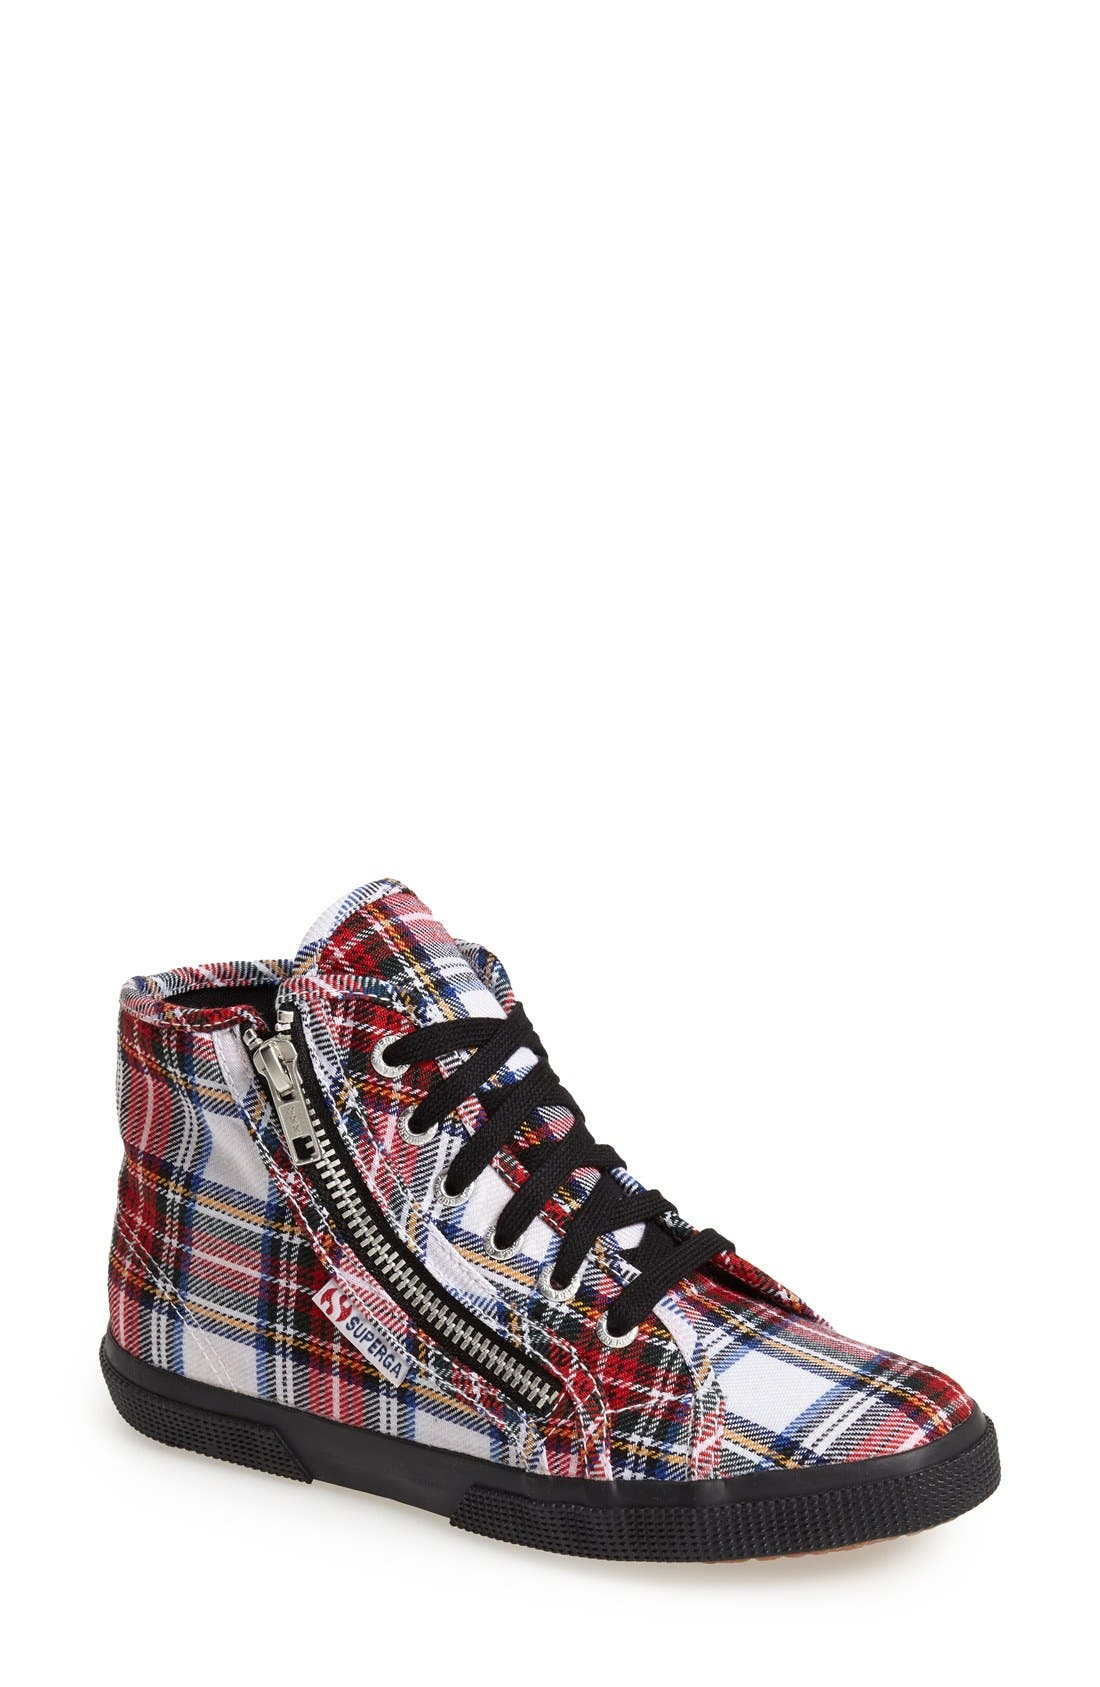 Main Image - Superga Tartan Print High-Top Sneaker (Women)